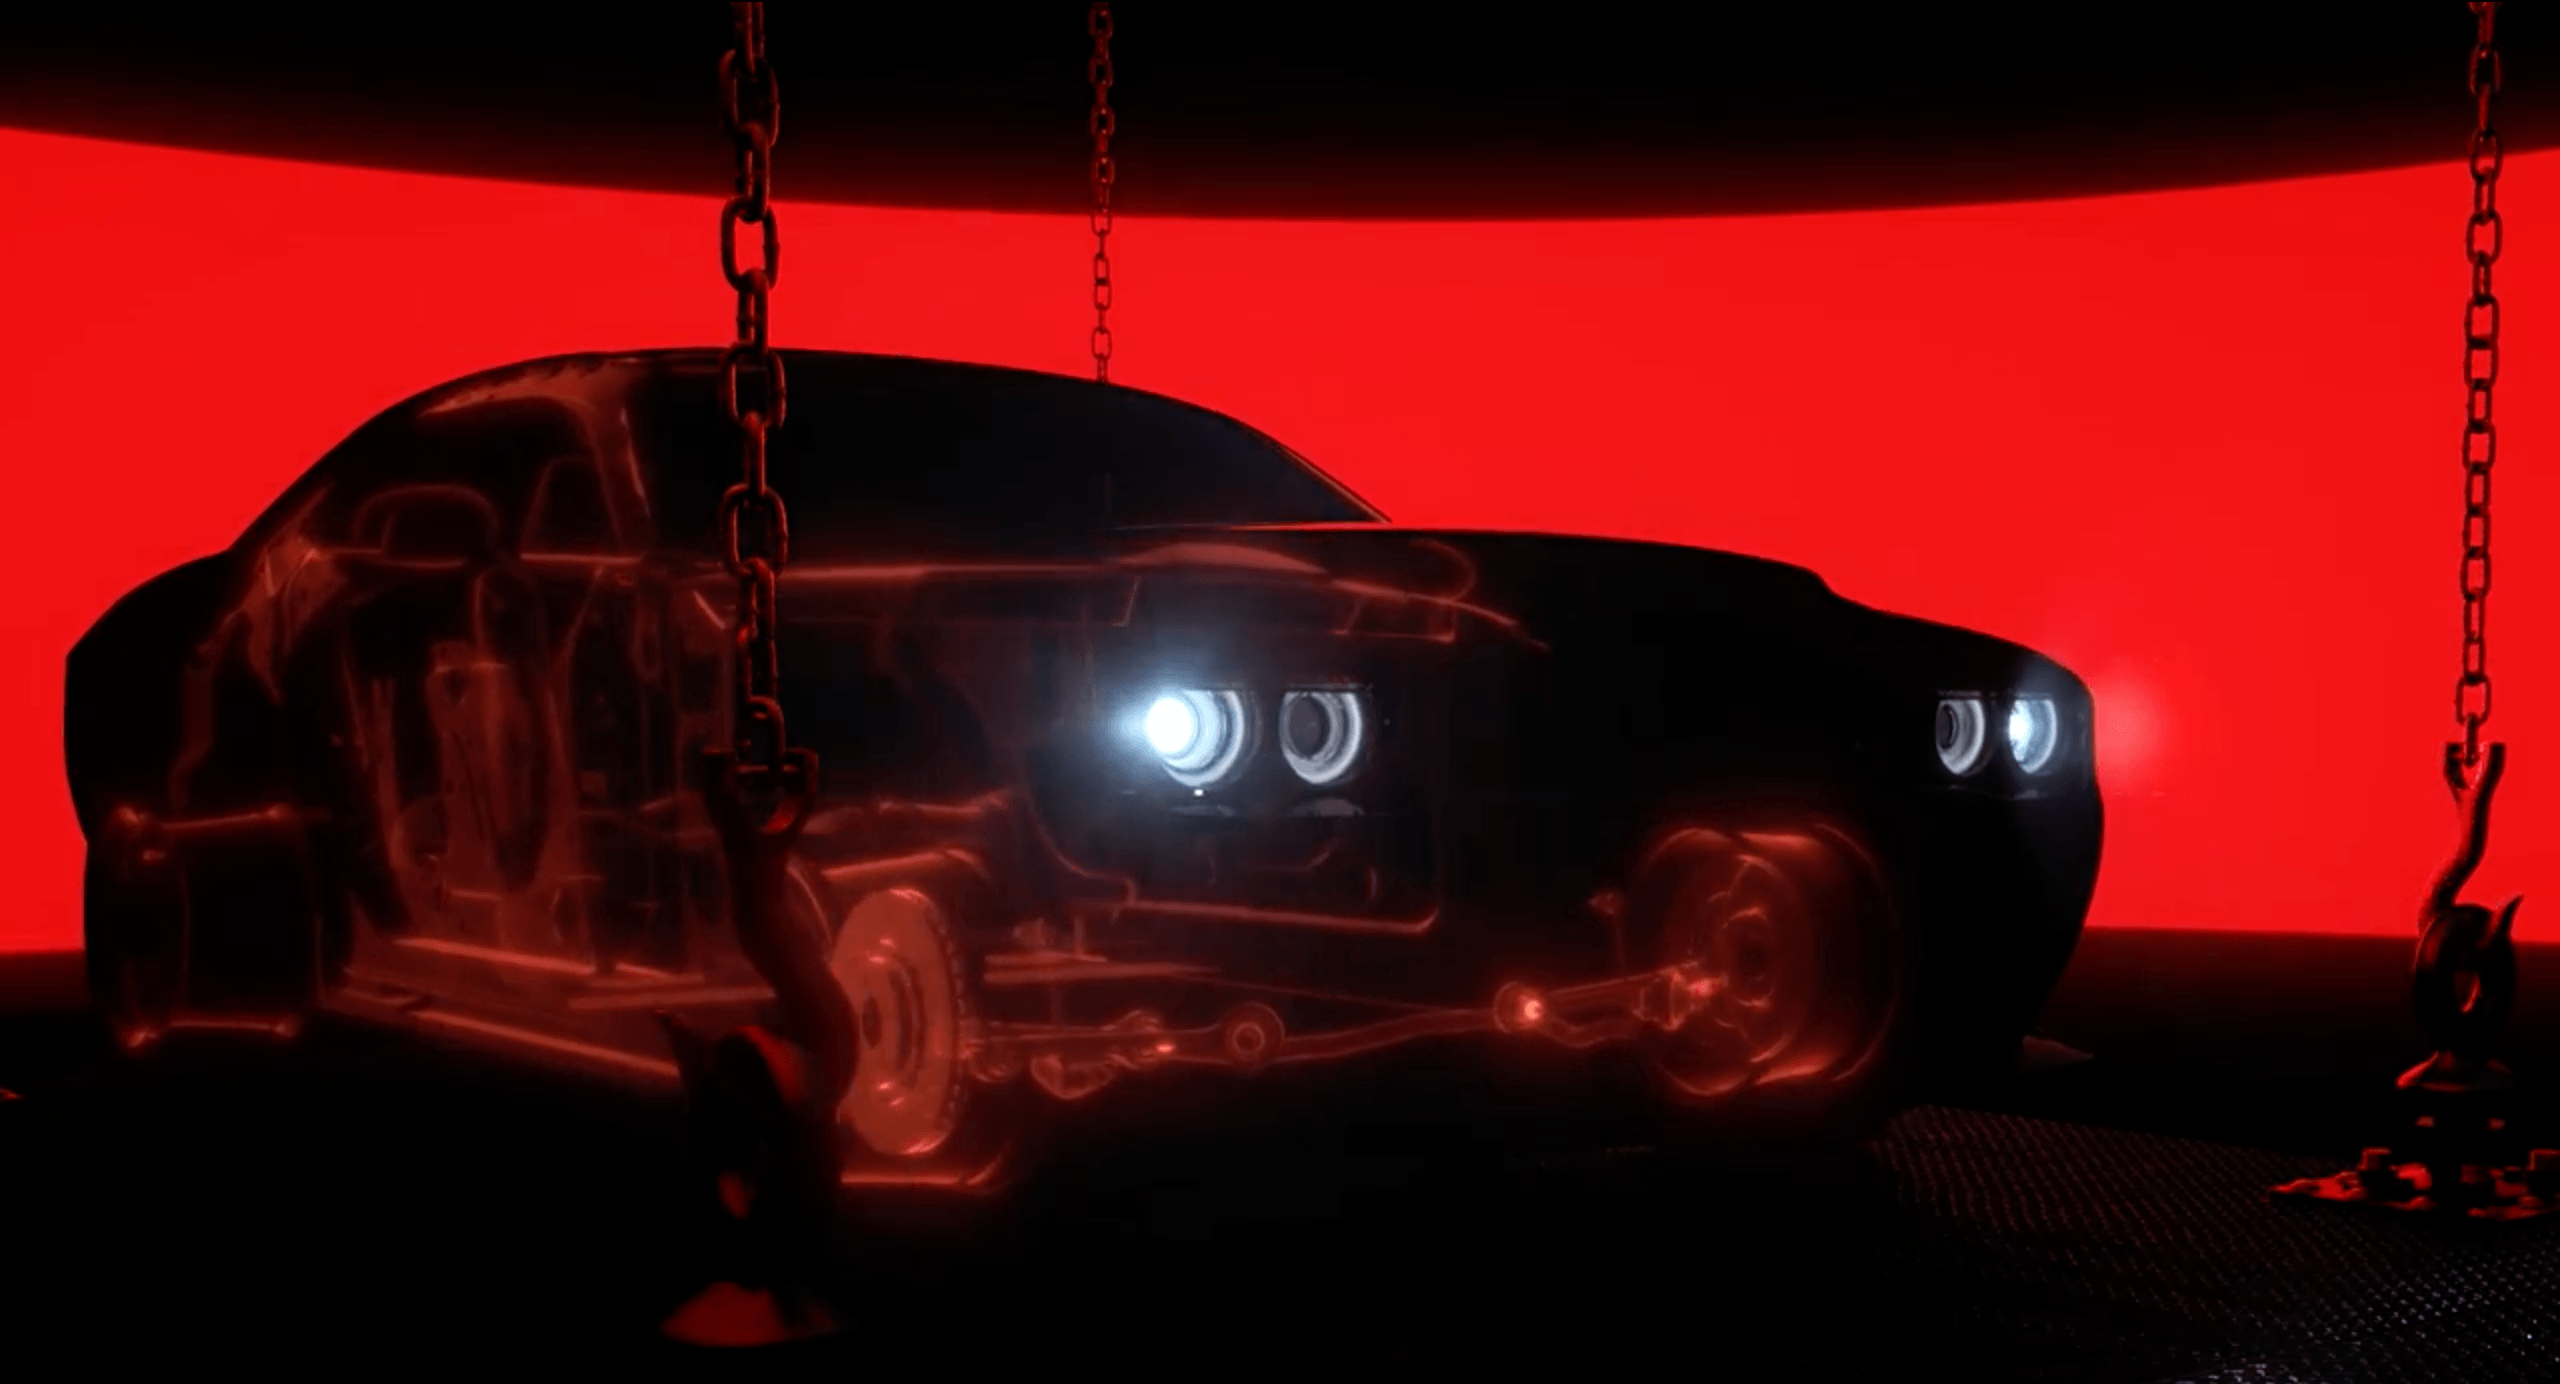 10 Things We Think We Know About the 2018 Dodge Demon